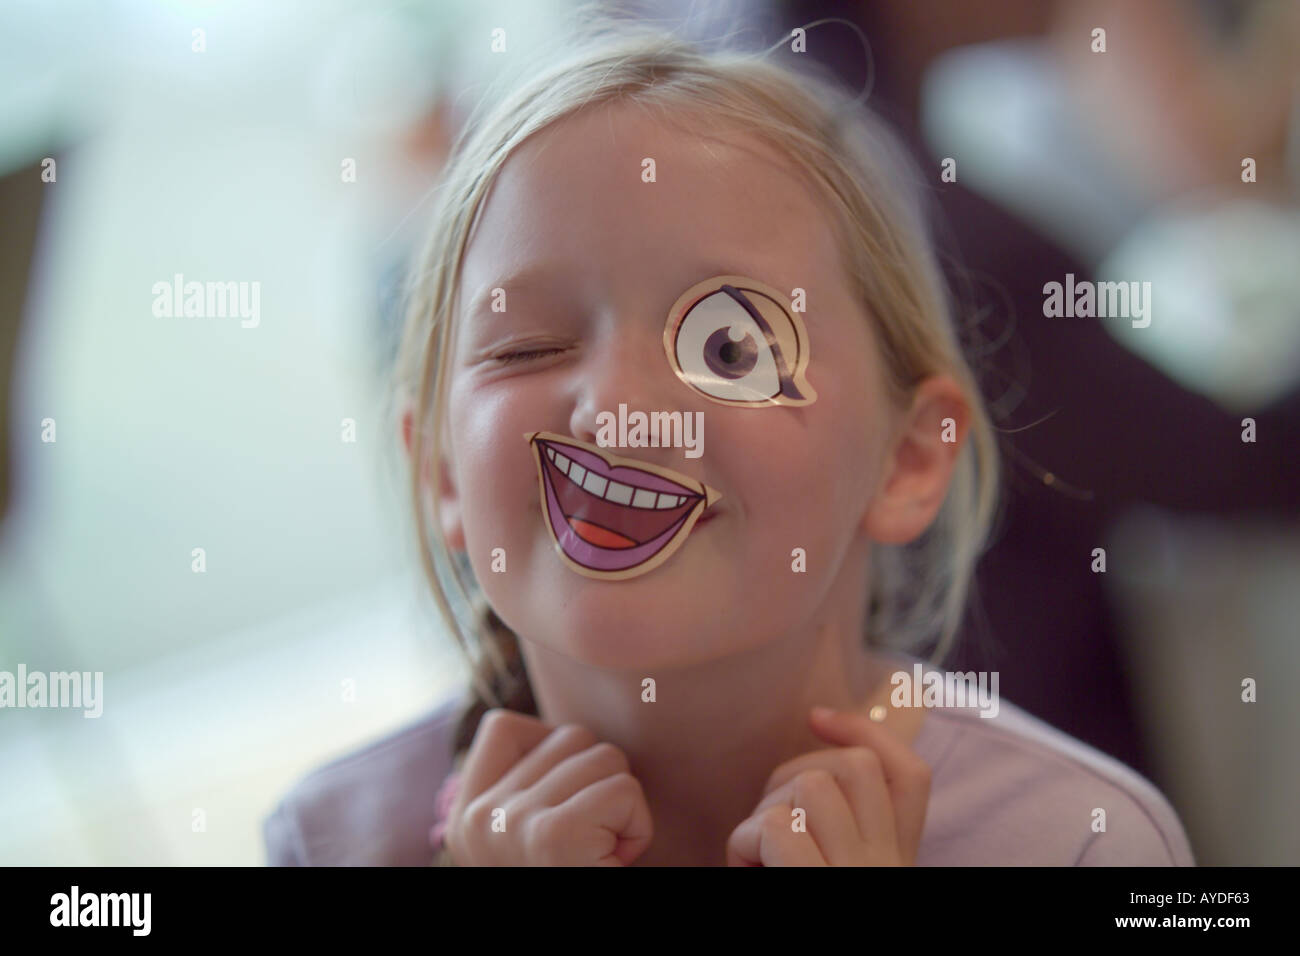 seven year old girl with stick on mouth and eye - Stock Image